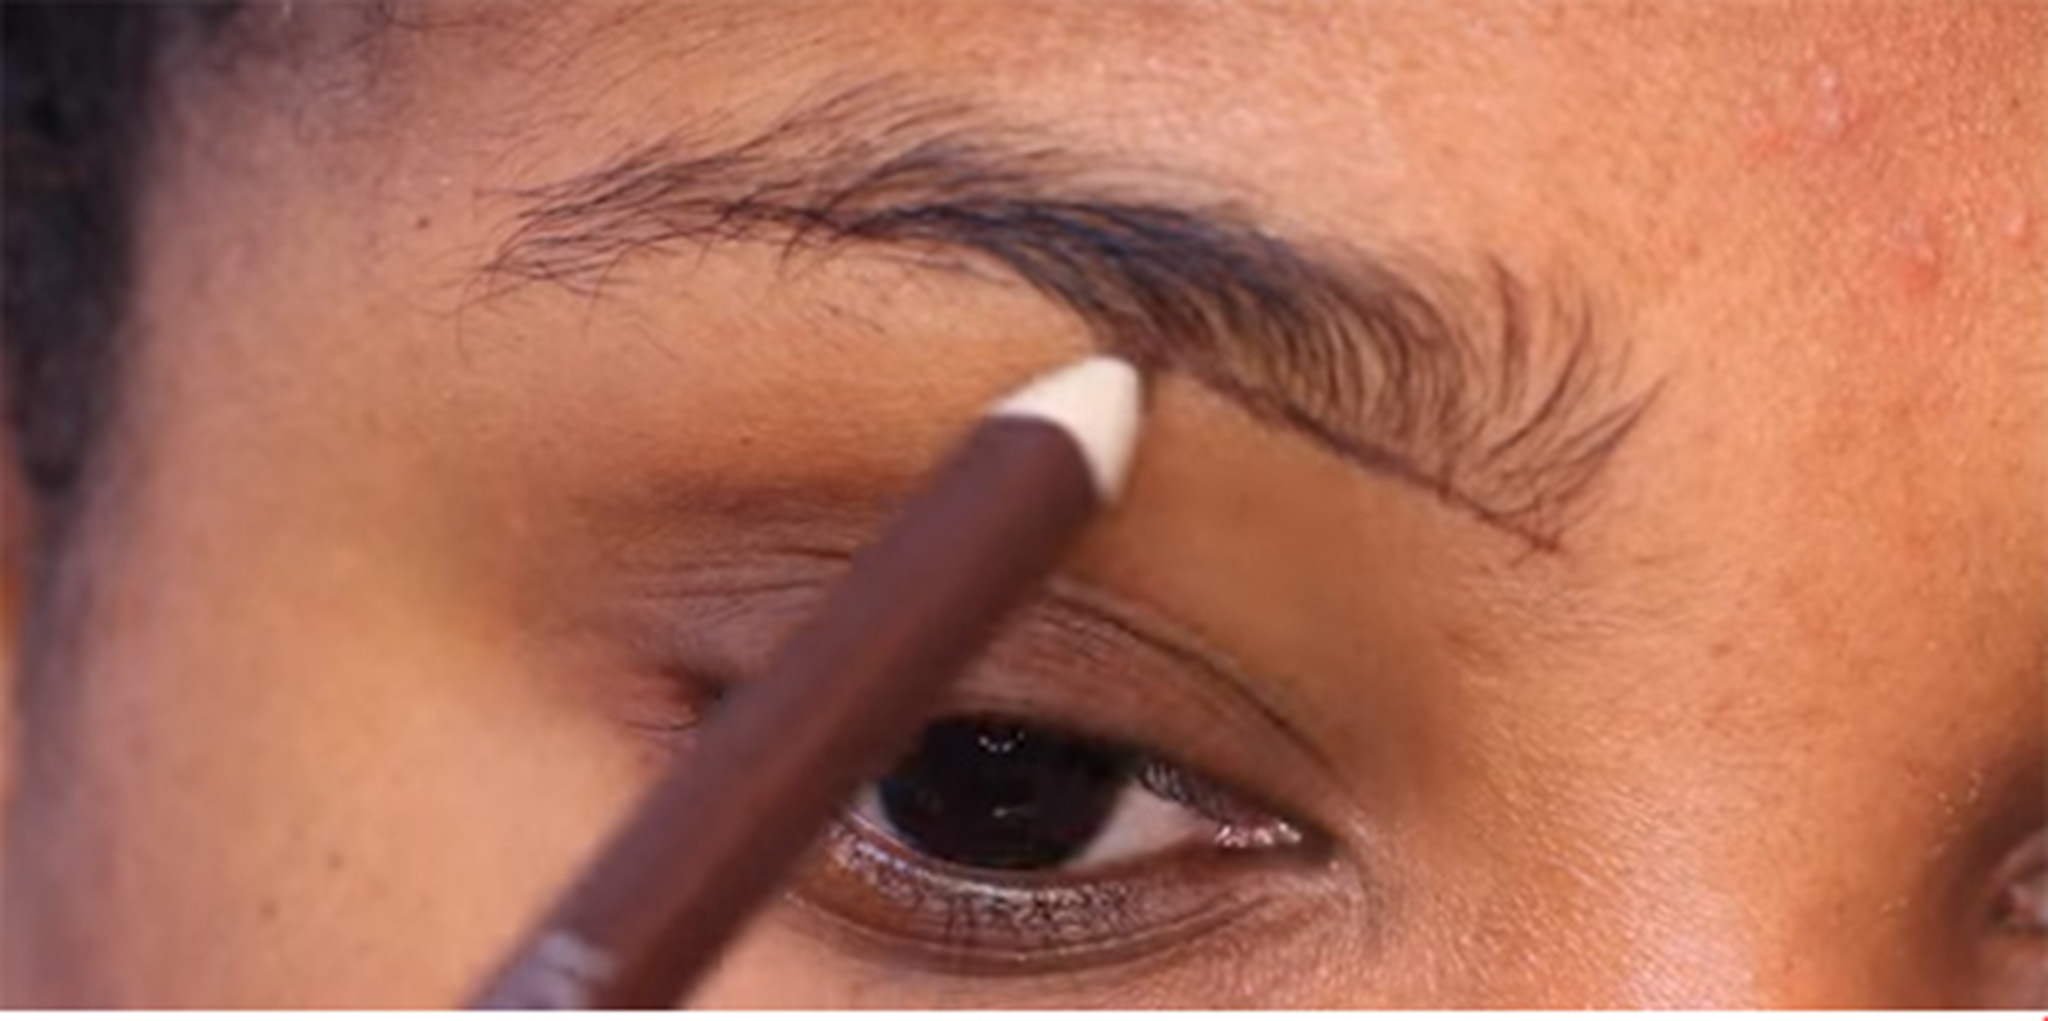 Take an eyebrow pencil and draw its corner and the desired shape you wish to make